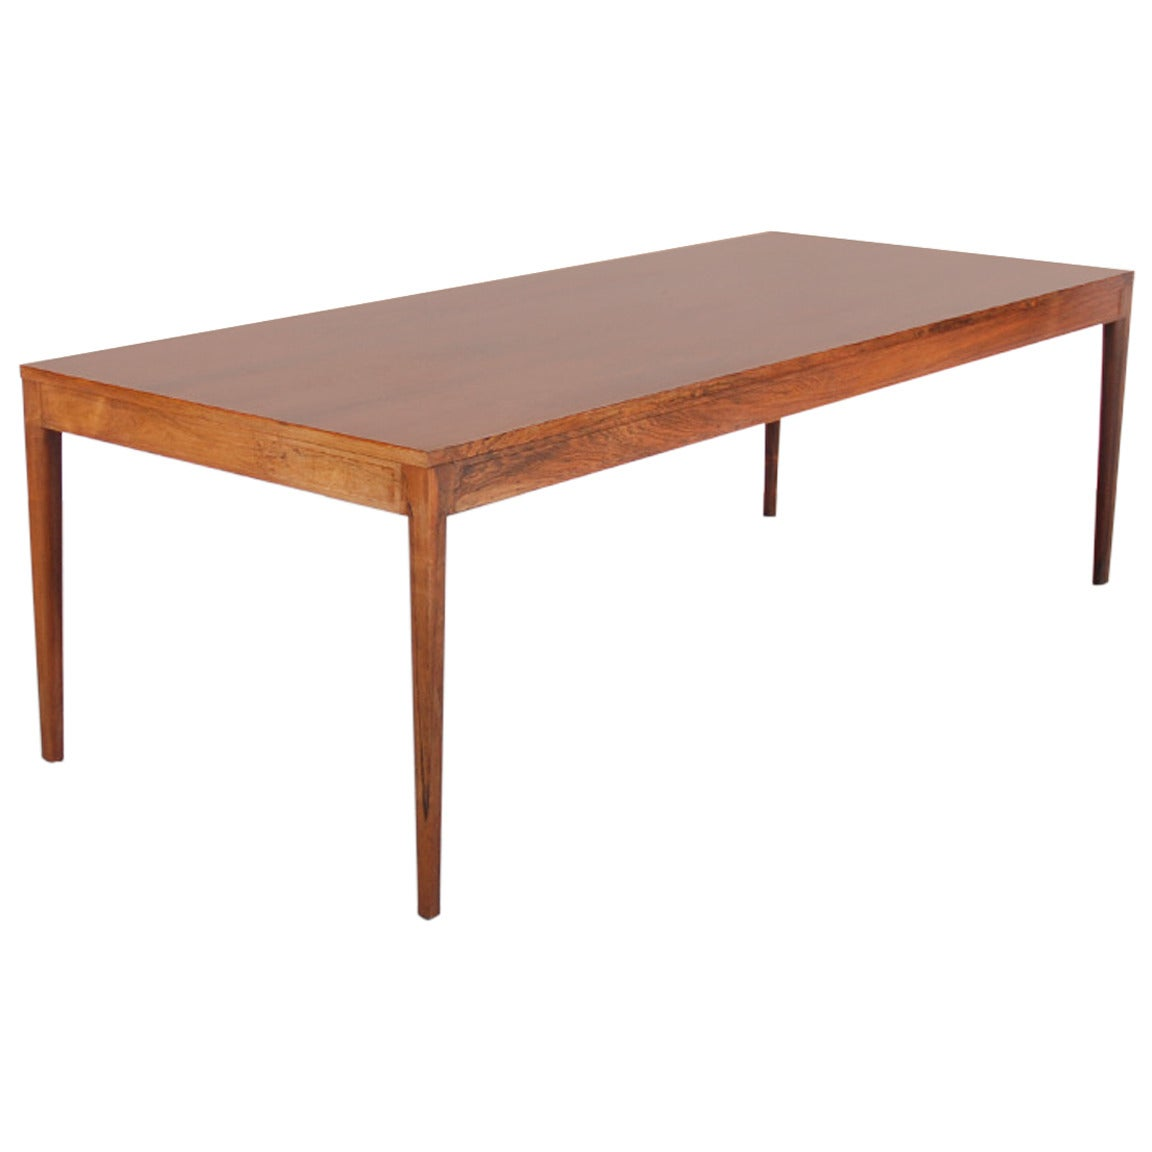 "Long Dining Tables For Sale: Long ""Diplomat"" Dining Table In Brazilian Rosewood By Finn"